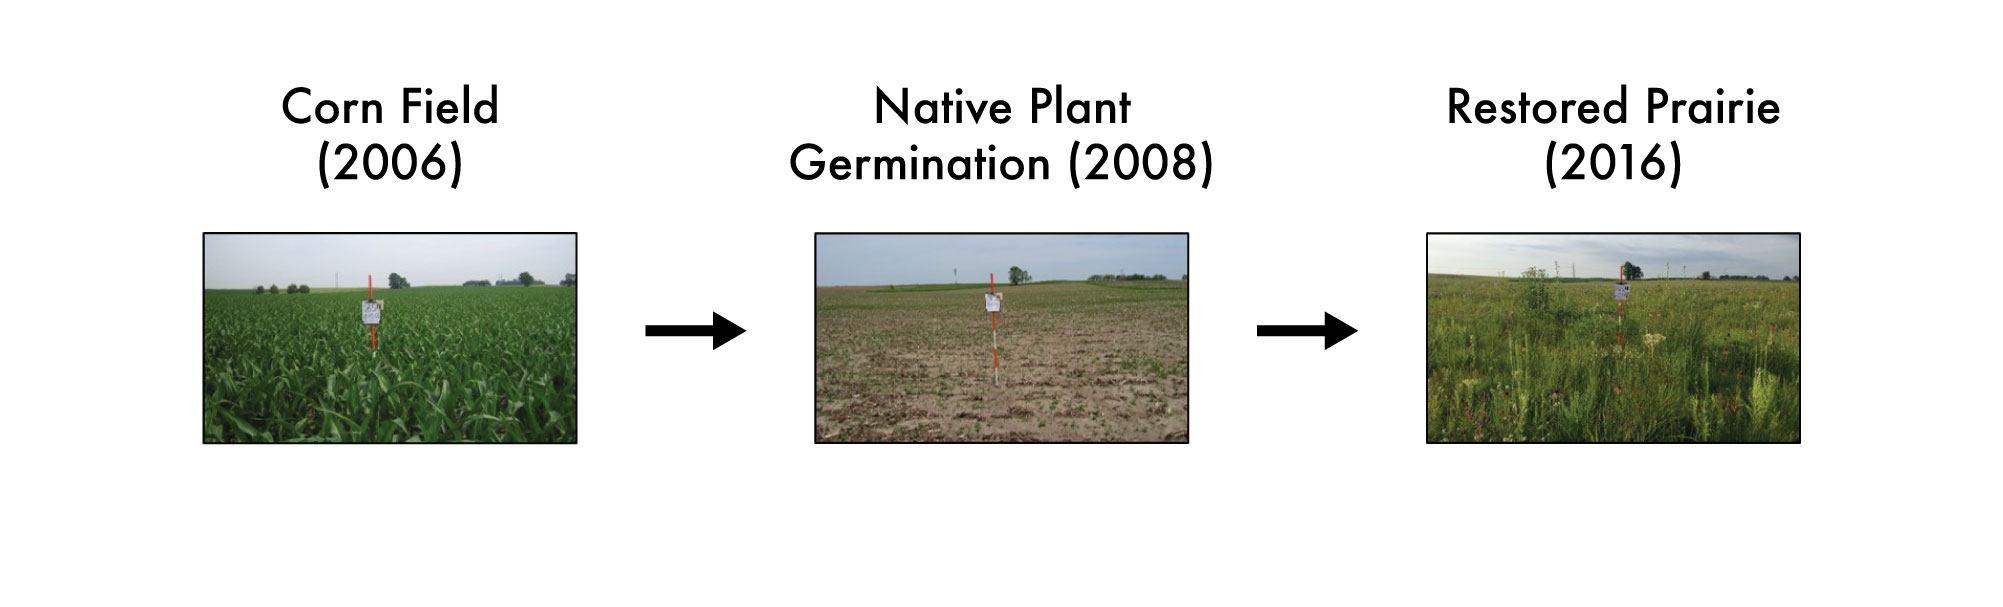 A graphic showing the progression of prairie restoration from cornfield, to native plant germination, and finally to restored prairie.